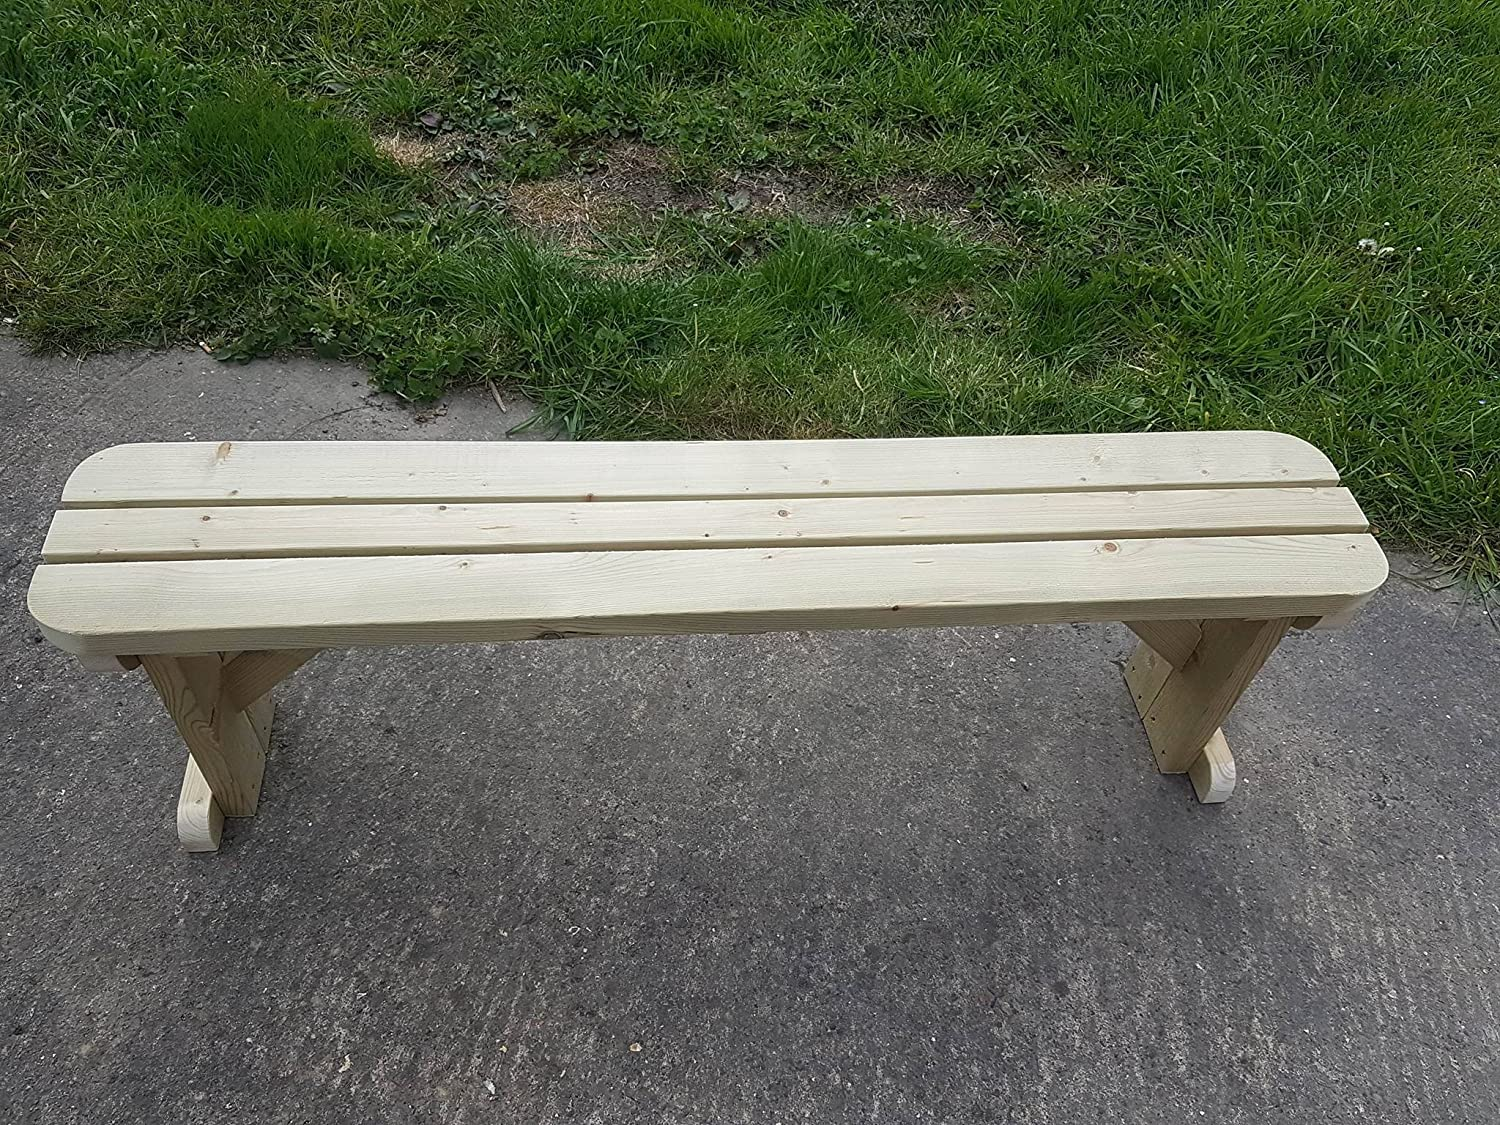 Super Saturday HOLLIES Rounded Wooden Garden Picnic Bench ...